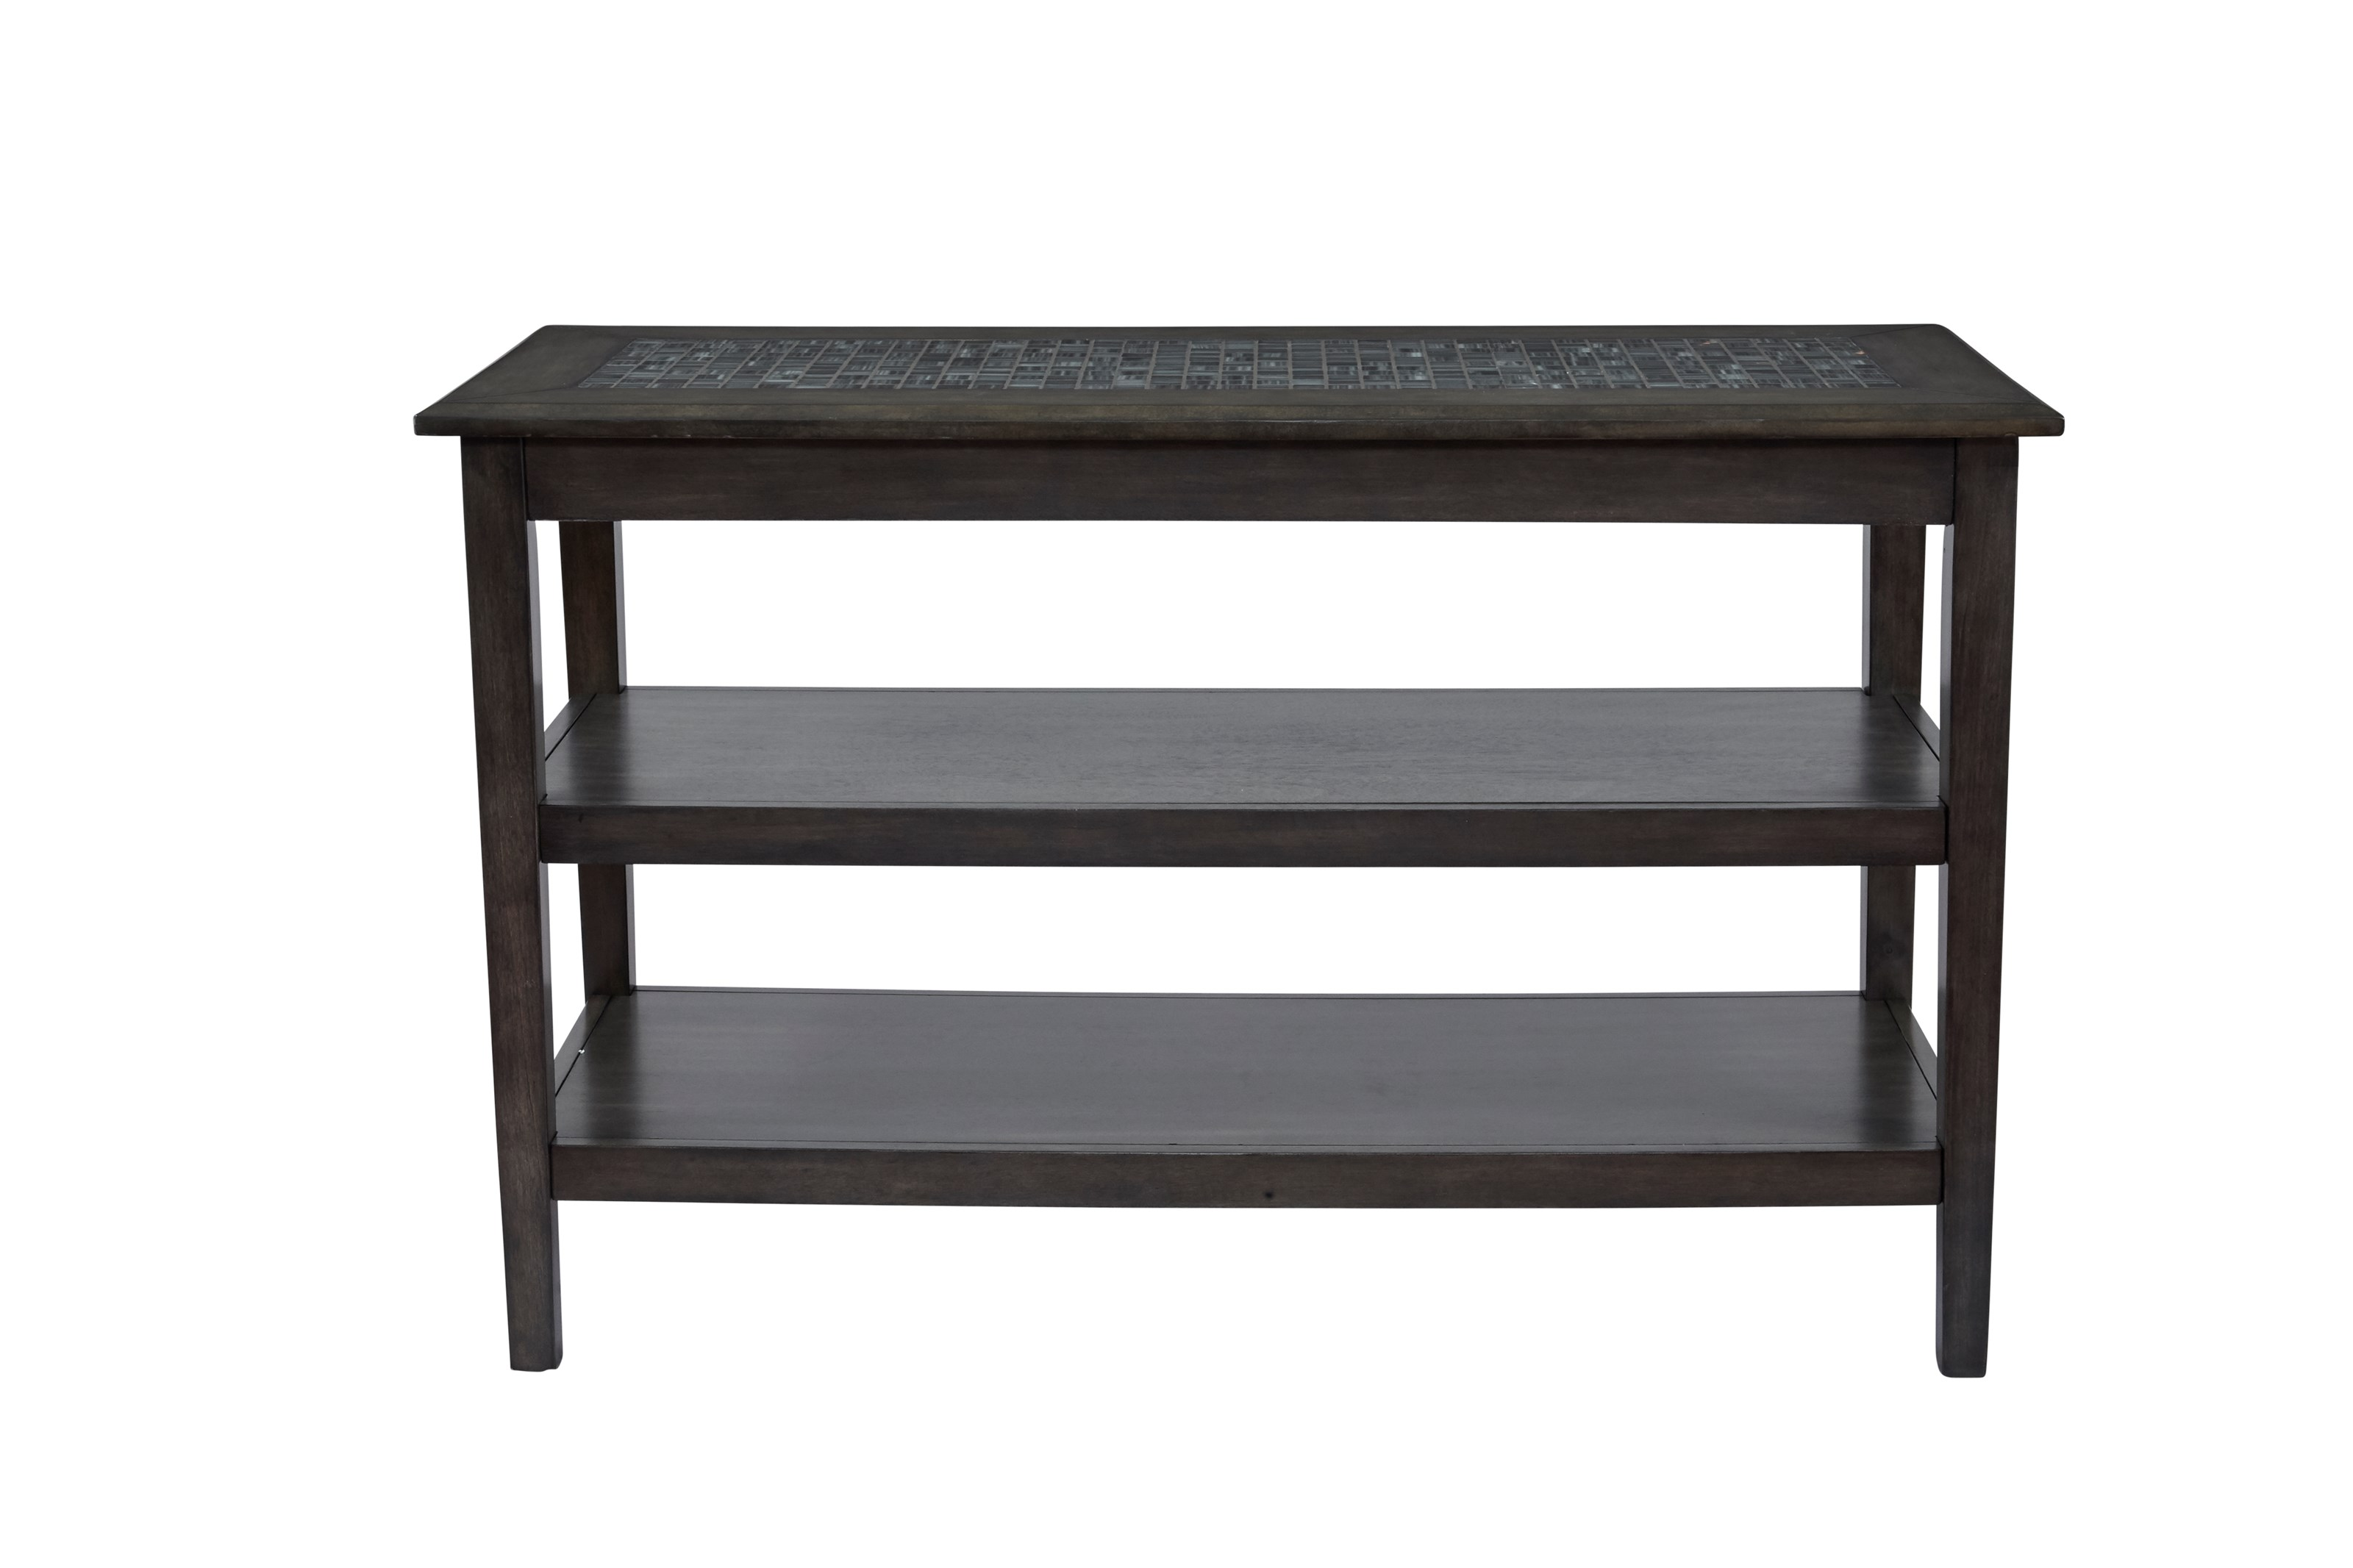 Jofran grey mosaic 1798 4 sofa media table furniture and for Jofran sofa table